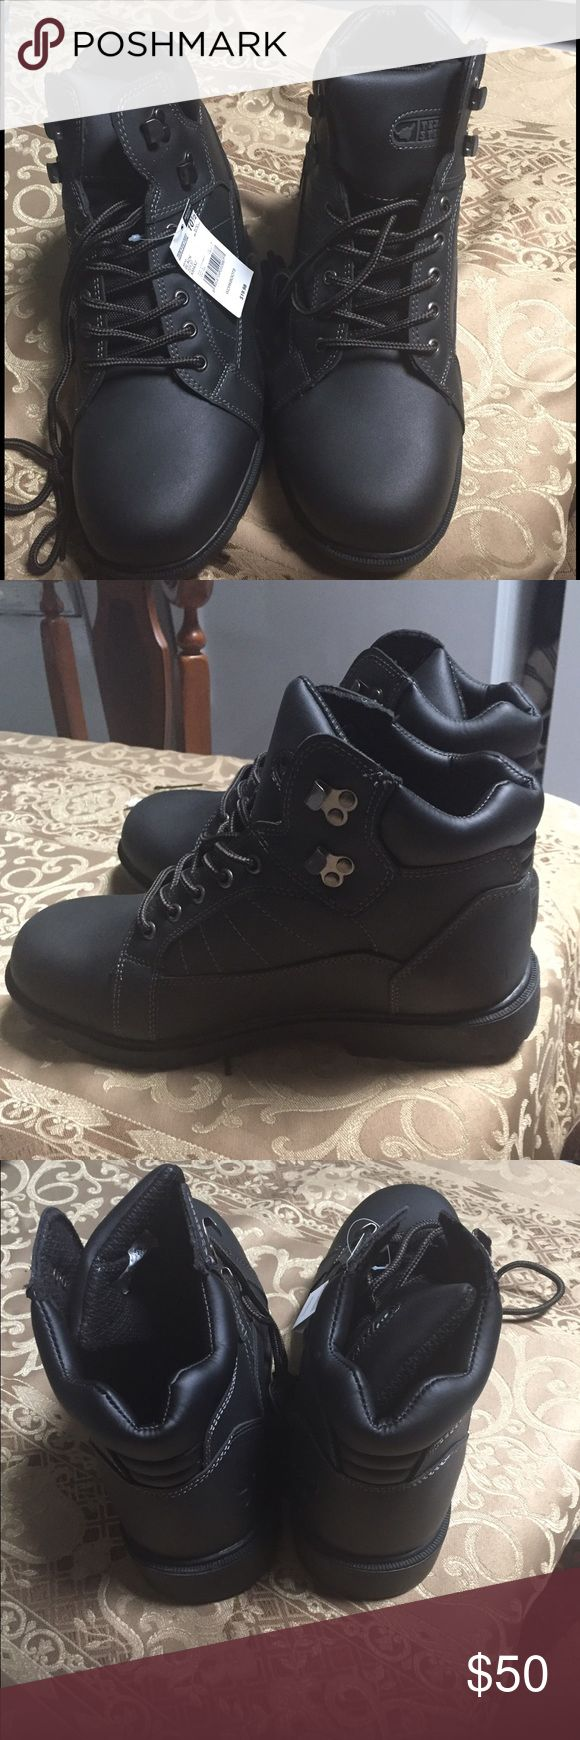 Men's black work boots ‼️‼️SALE‼️BUY NOW‼️ Men's black work boots ‼️NEVER WORN ‼️Does not come in original box‼️comes with tags‼️ size 10.5 Shoes